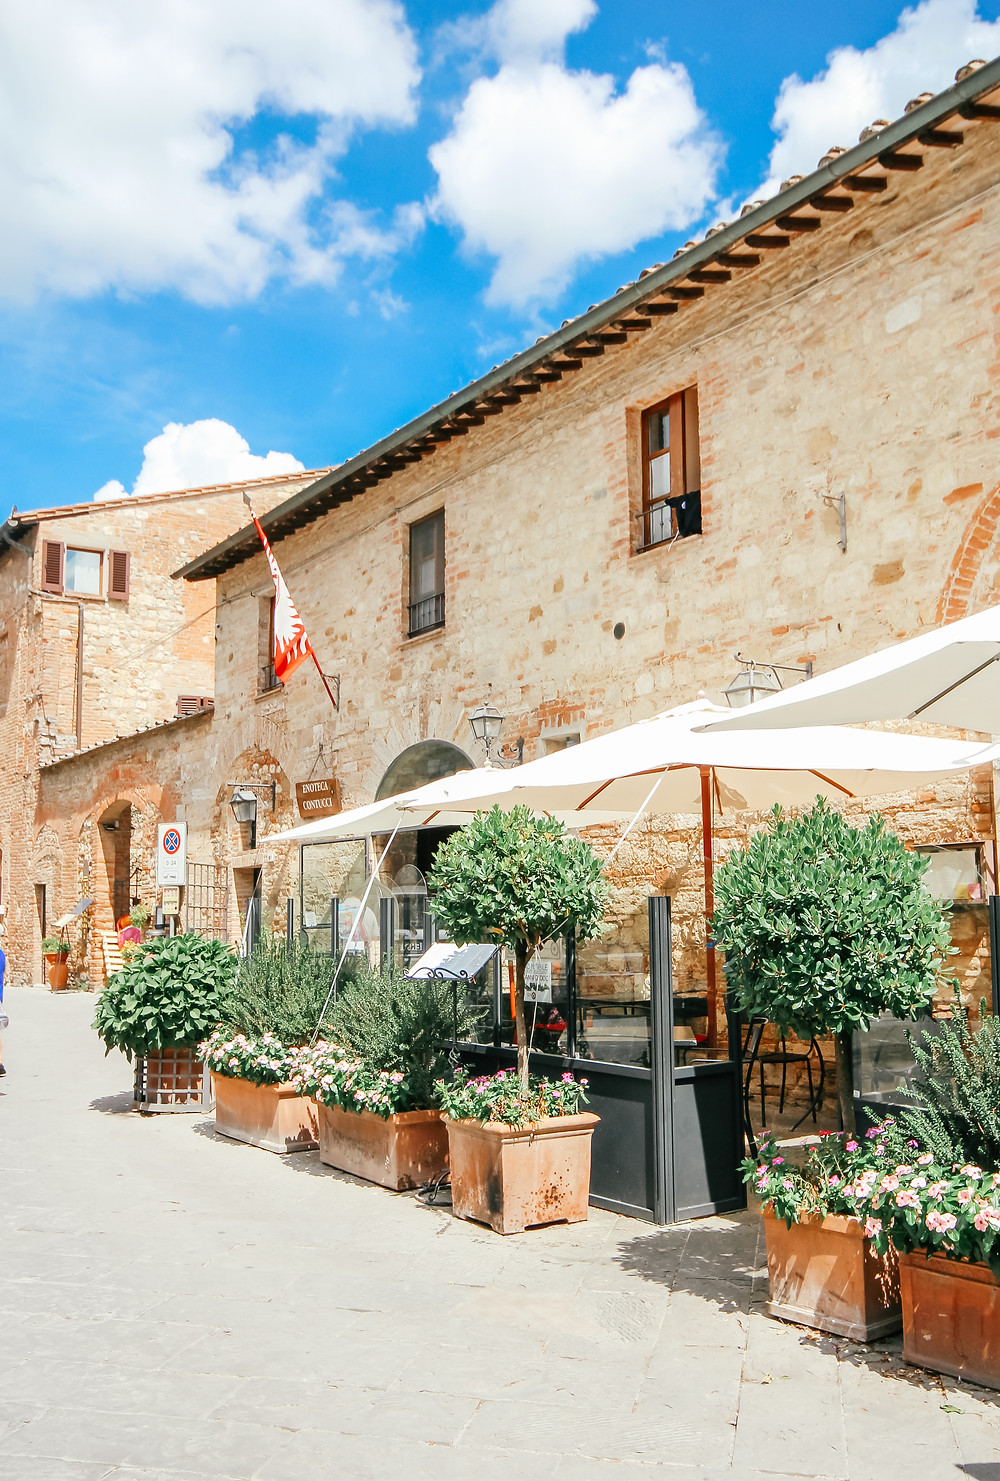 I've long been mesmerized by die striking beauty of Tuscany; the rolling hills of green vineyards adorned with cypress trees, the elegant, yet rustic farmhouses, the magical sunsets and of course, the wine! Being both wine lovers (As South Africans are!), The Husband and I couldn't wait to tick this dreamy location off our bucket list, and last summer we finally had the opportunity to do so. After exploring the dreamy Amalfi Coast (You can see my guide to Positano here) we made our way  to the peaceful countryside, where we spent 6 relaxing days in Montepulciano, Panzano and then Florence.